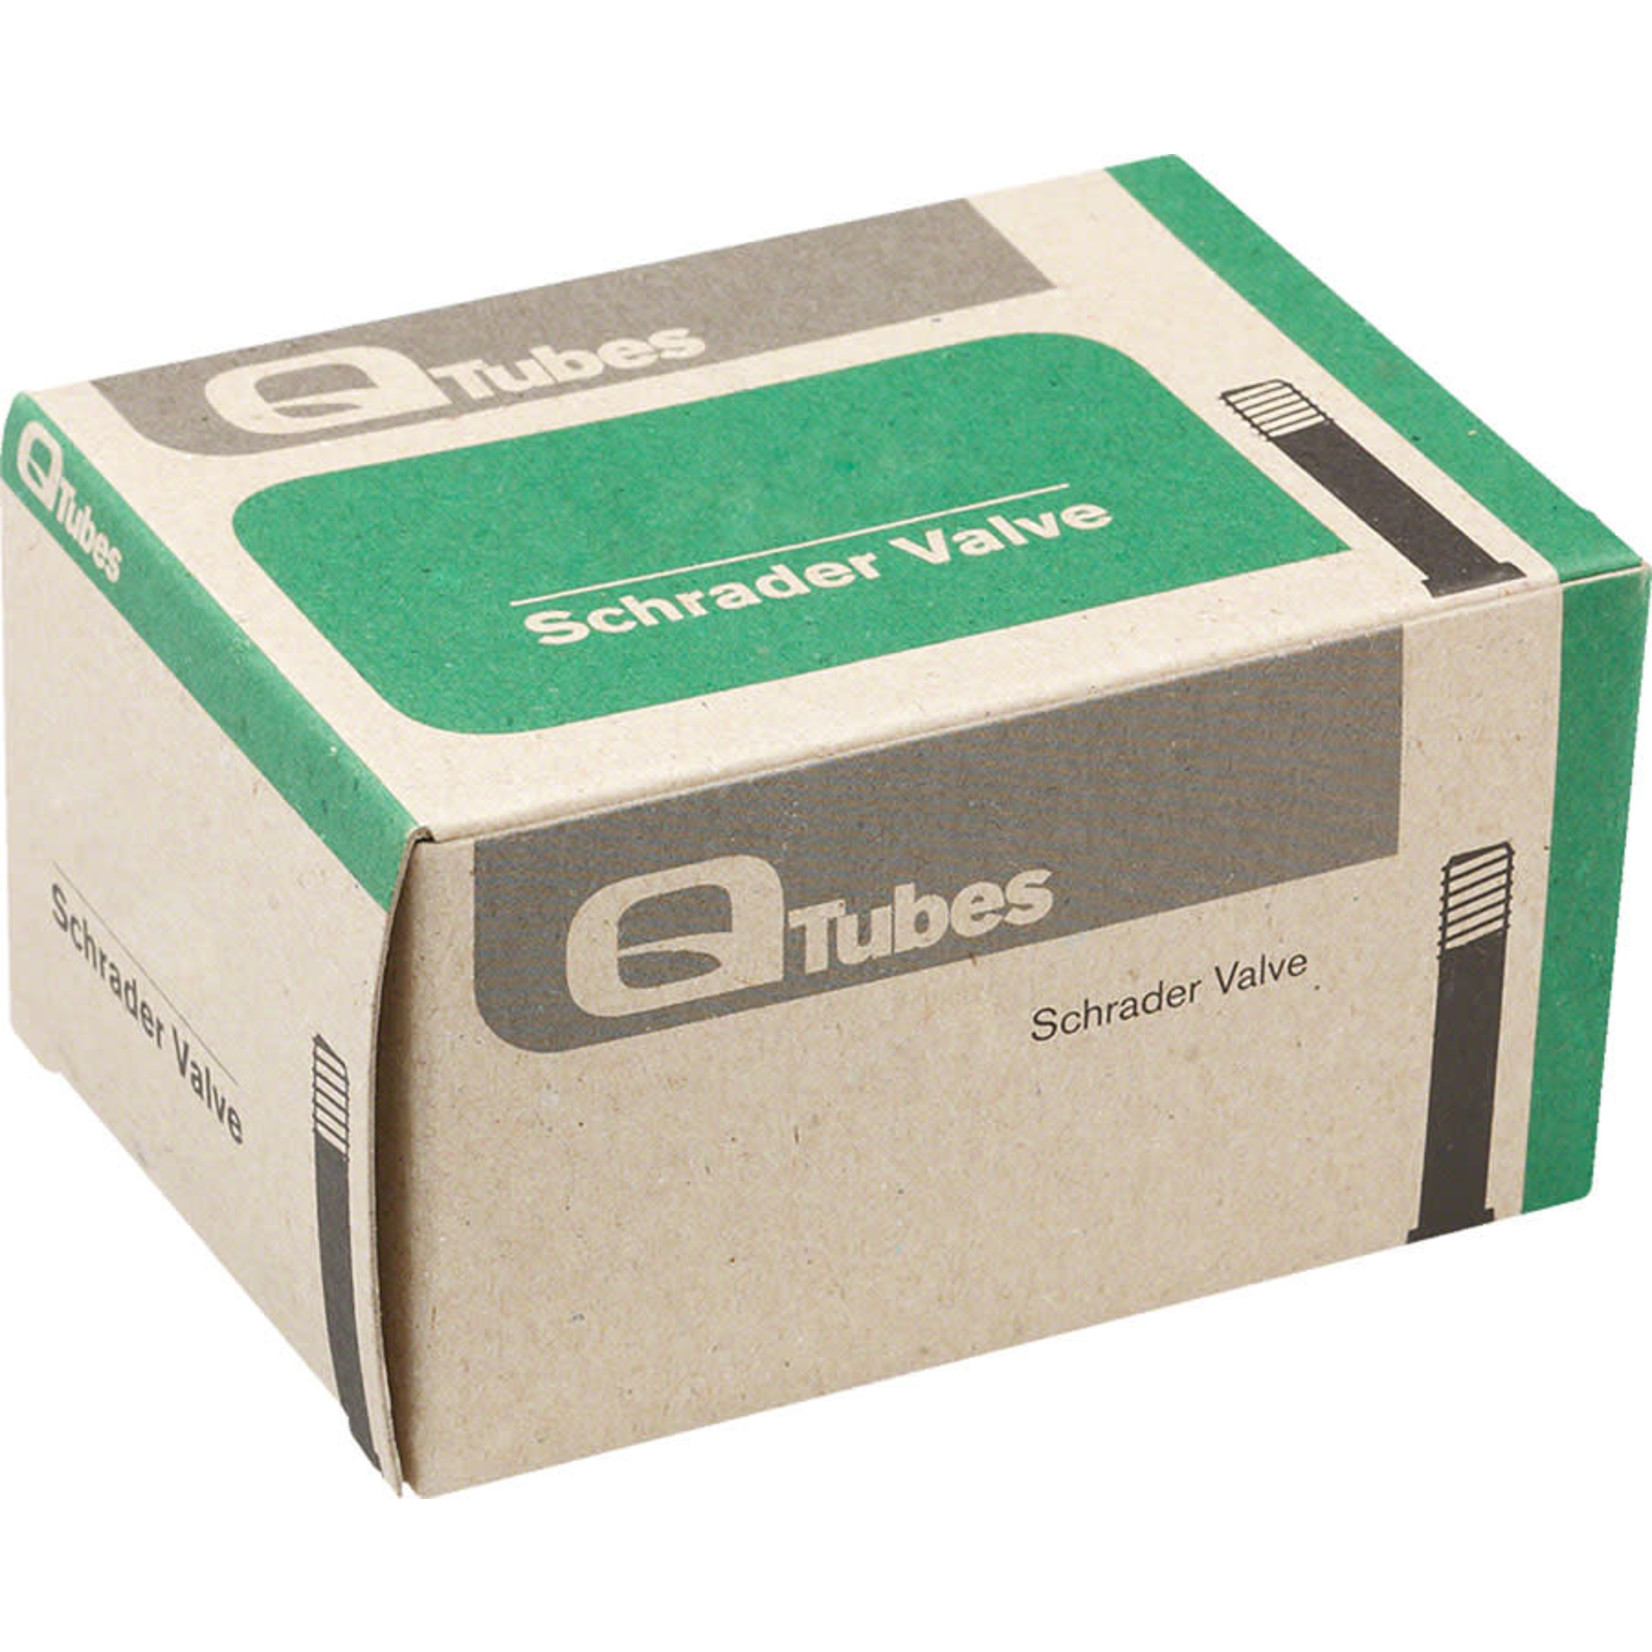 """Q-Tubes Q-Tubes Value Series Tube with Low Lead Schrader Valve: 14"""" x 1.75-2.125"""""""